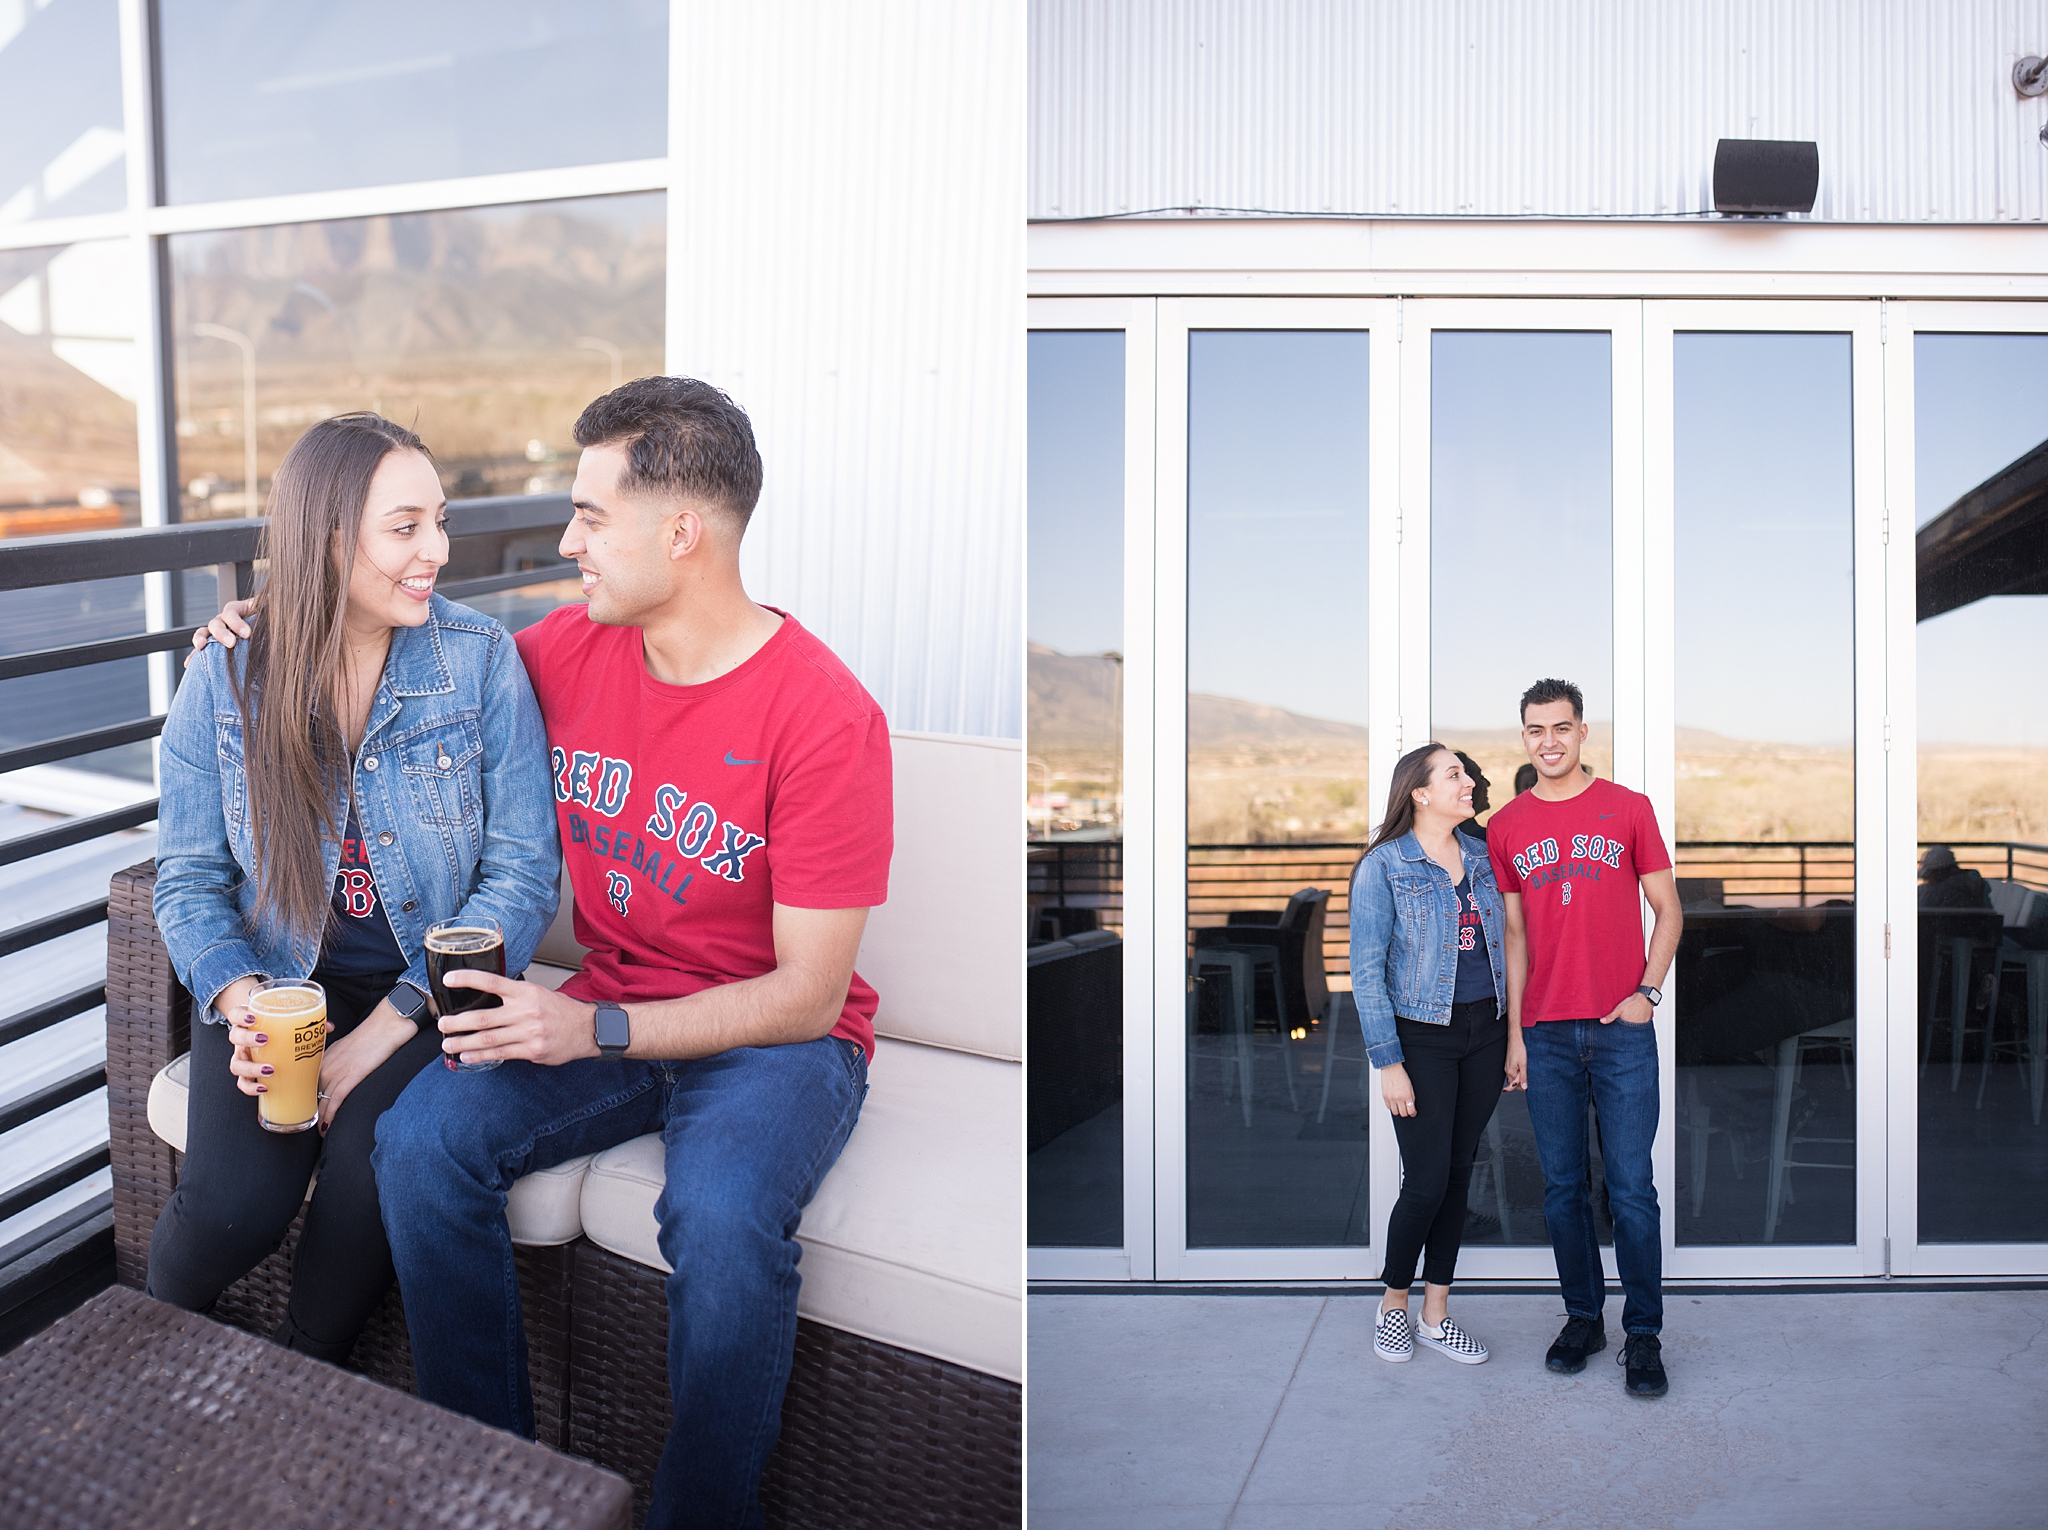 bosque brewery engagement session placitas mountains foothills albuquerque wedding photography new mexico wedding photographer kayla kitts photography_0012.jpg